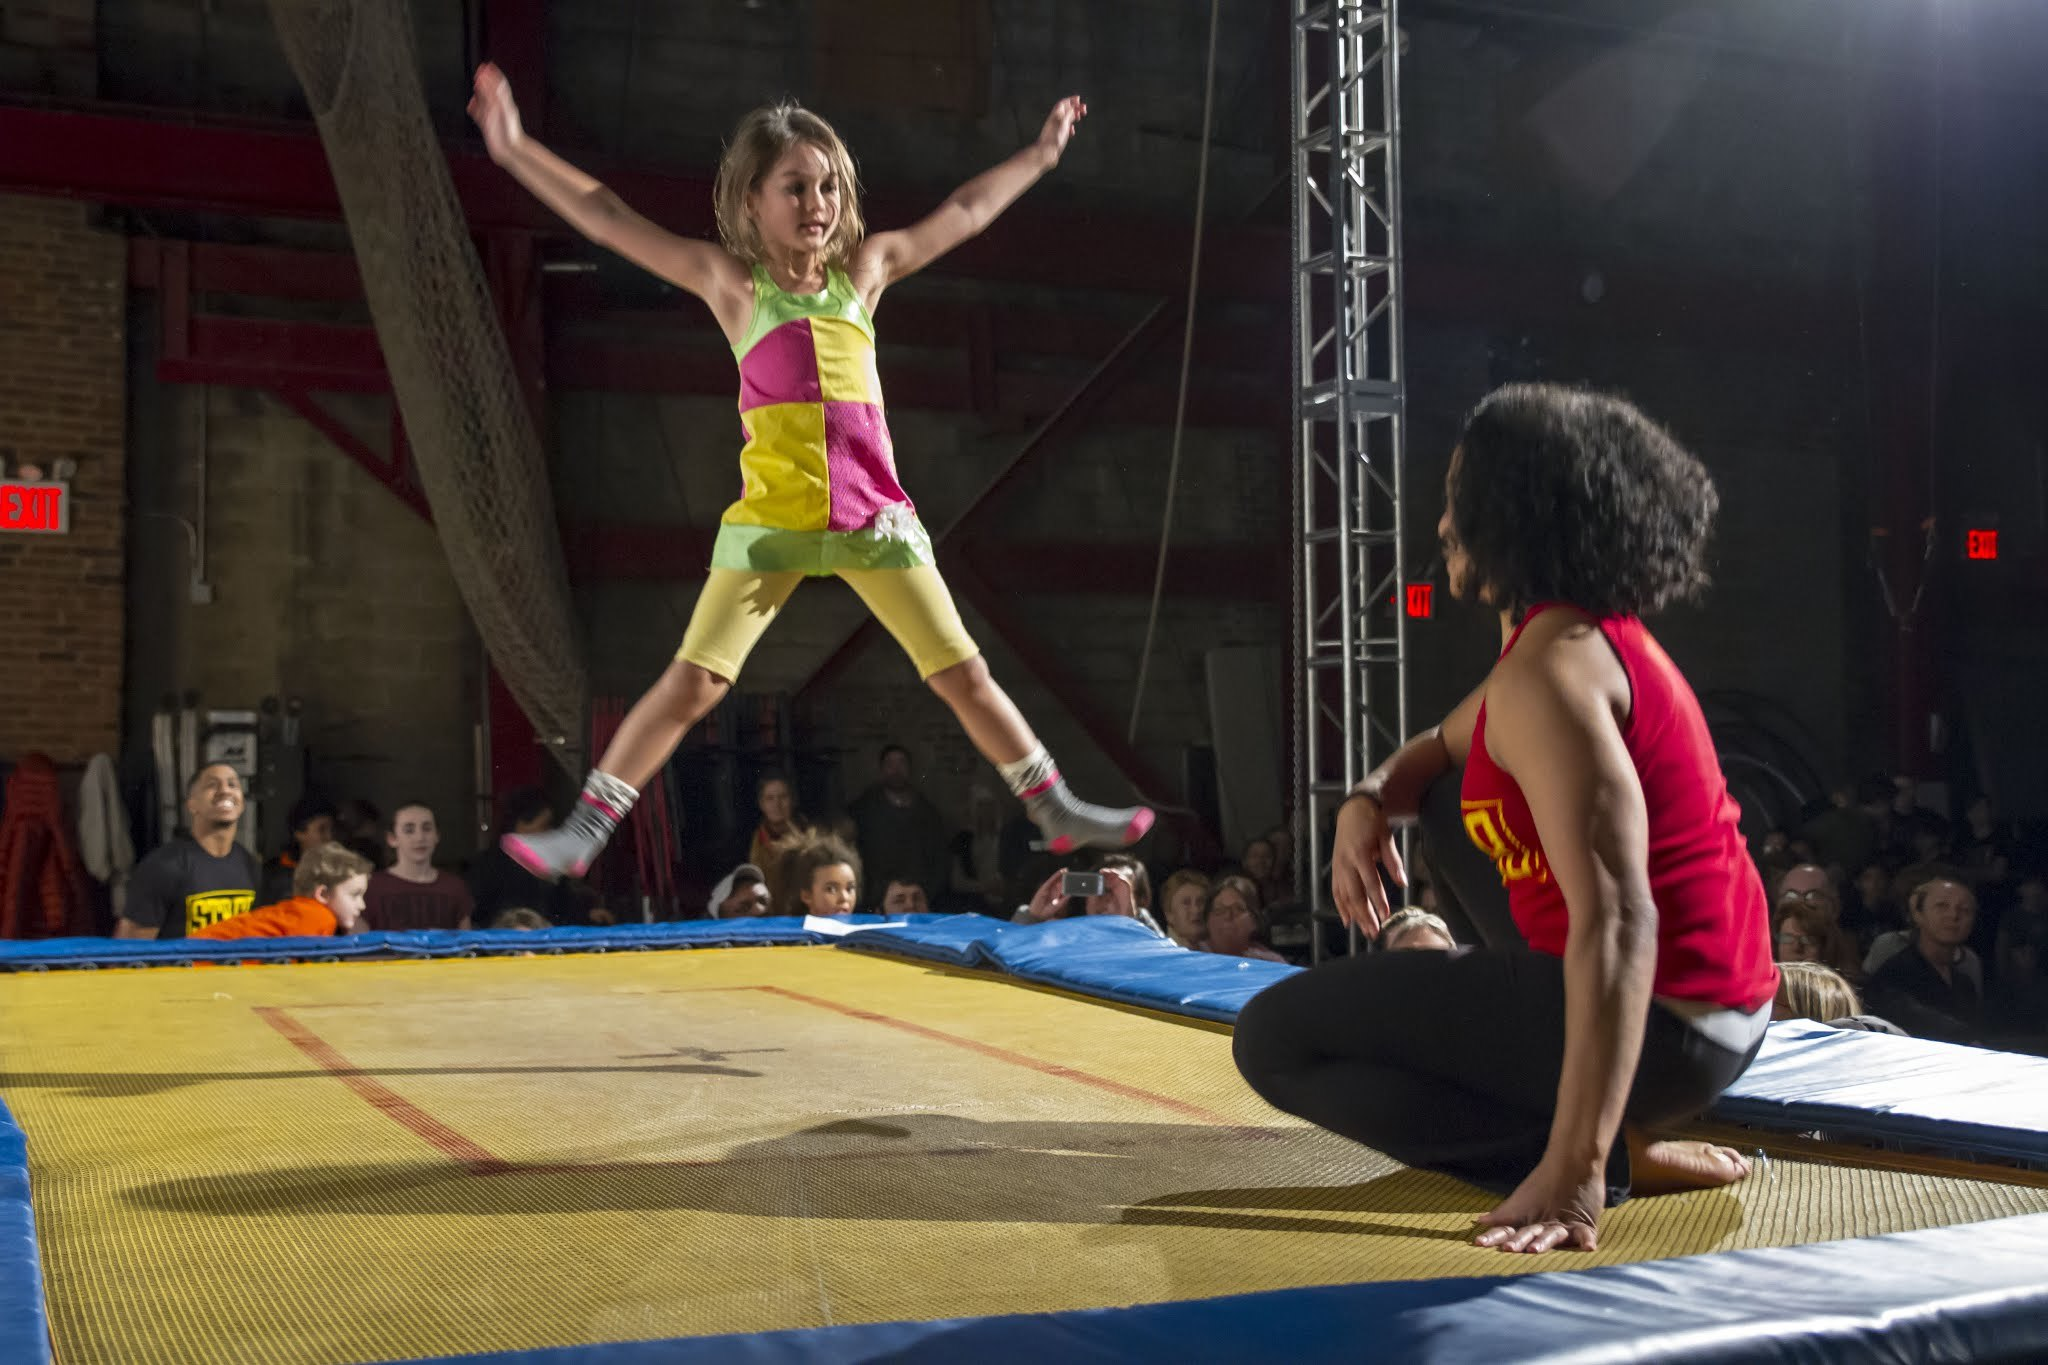 Trampoline parks in NYC